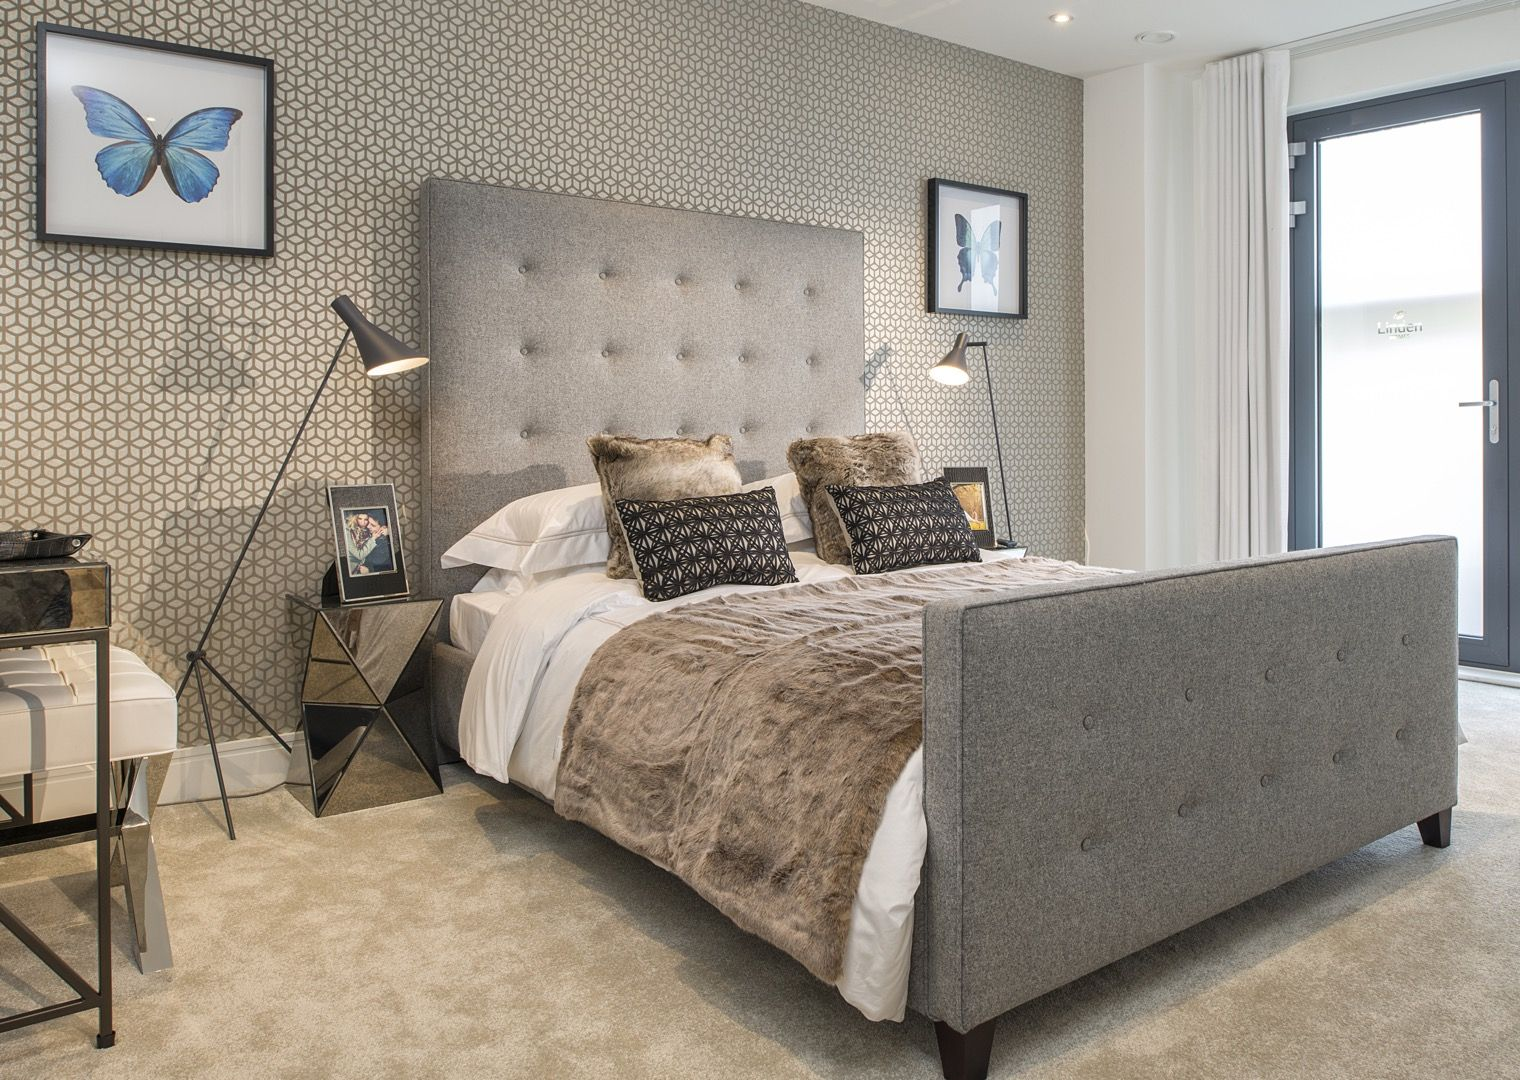 Taylor wimpey show home interiors google search also high mill farm rh pinterest